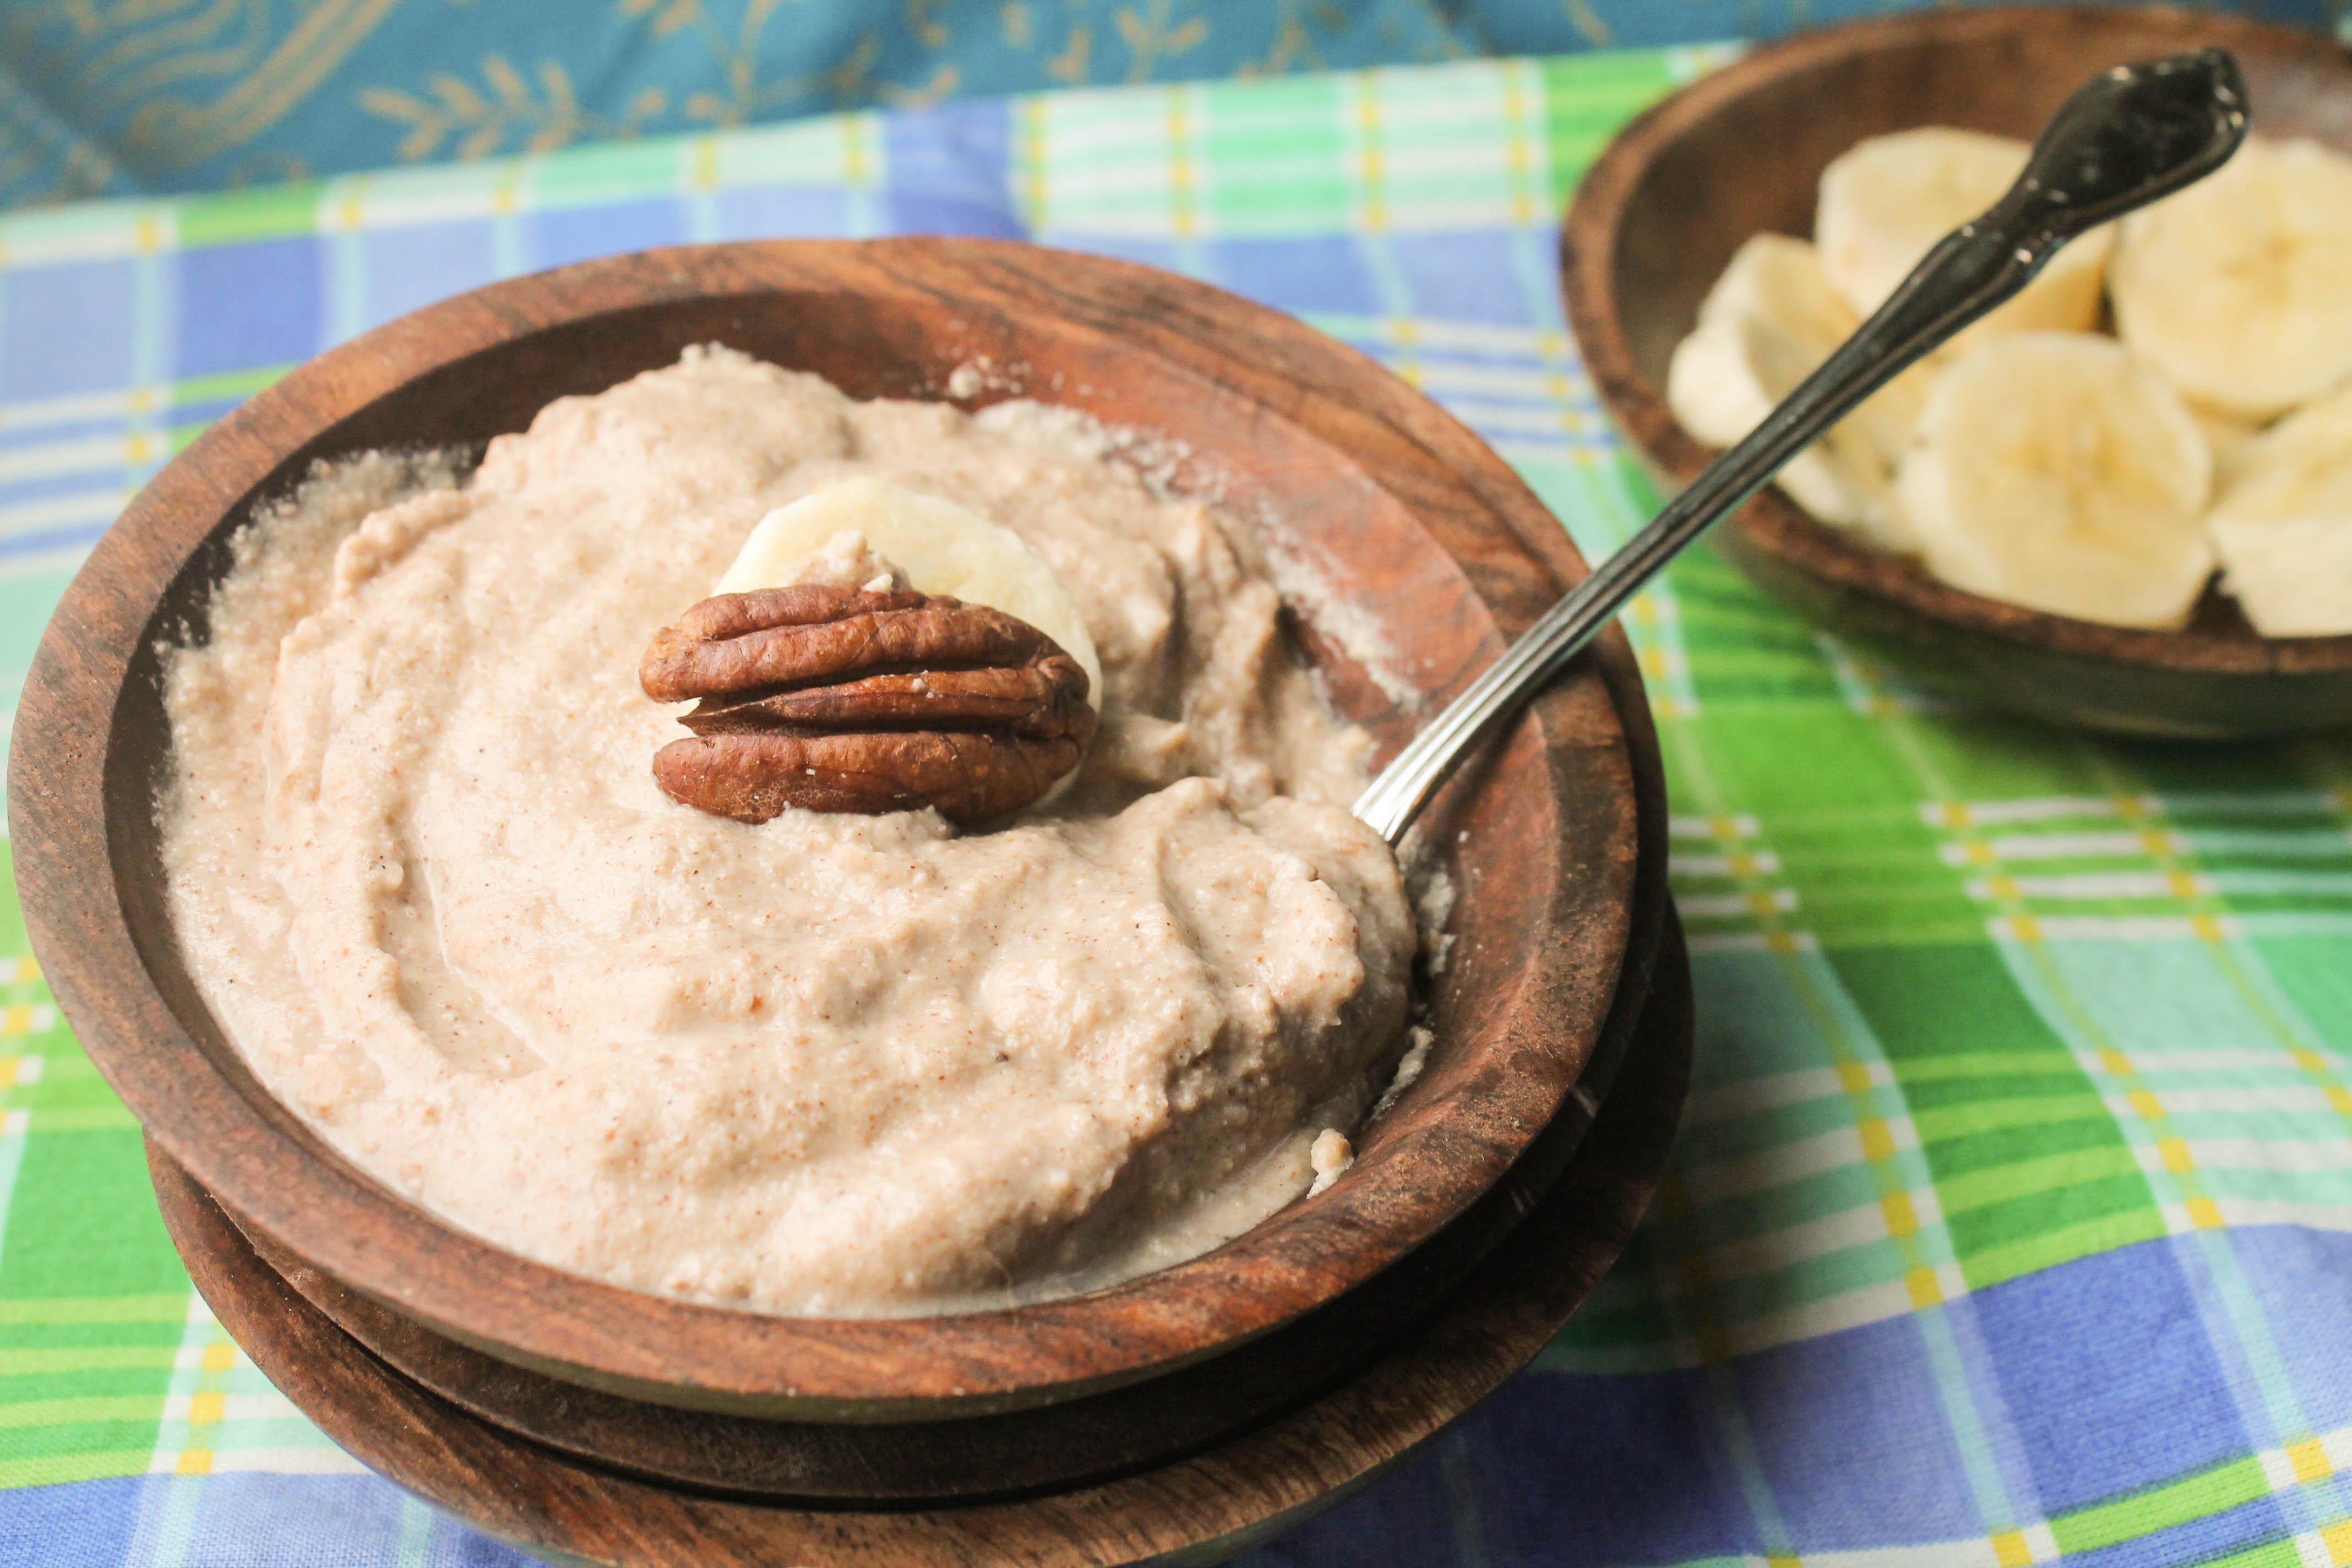 Keto Paleo Vegan Whole 30 Creamy Maple Nut Porridge